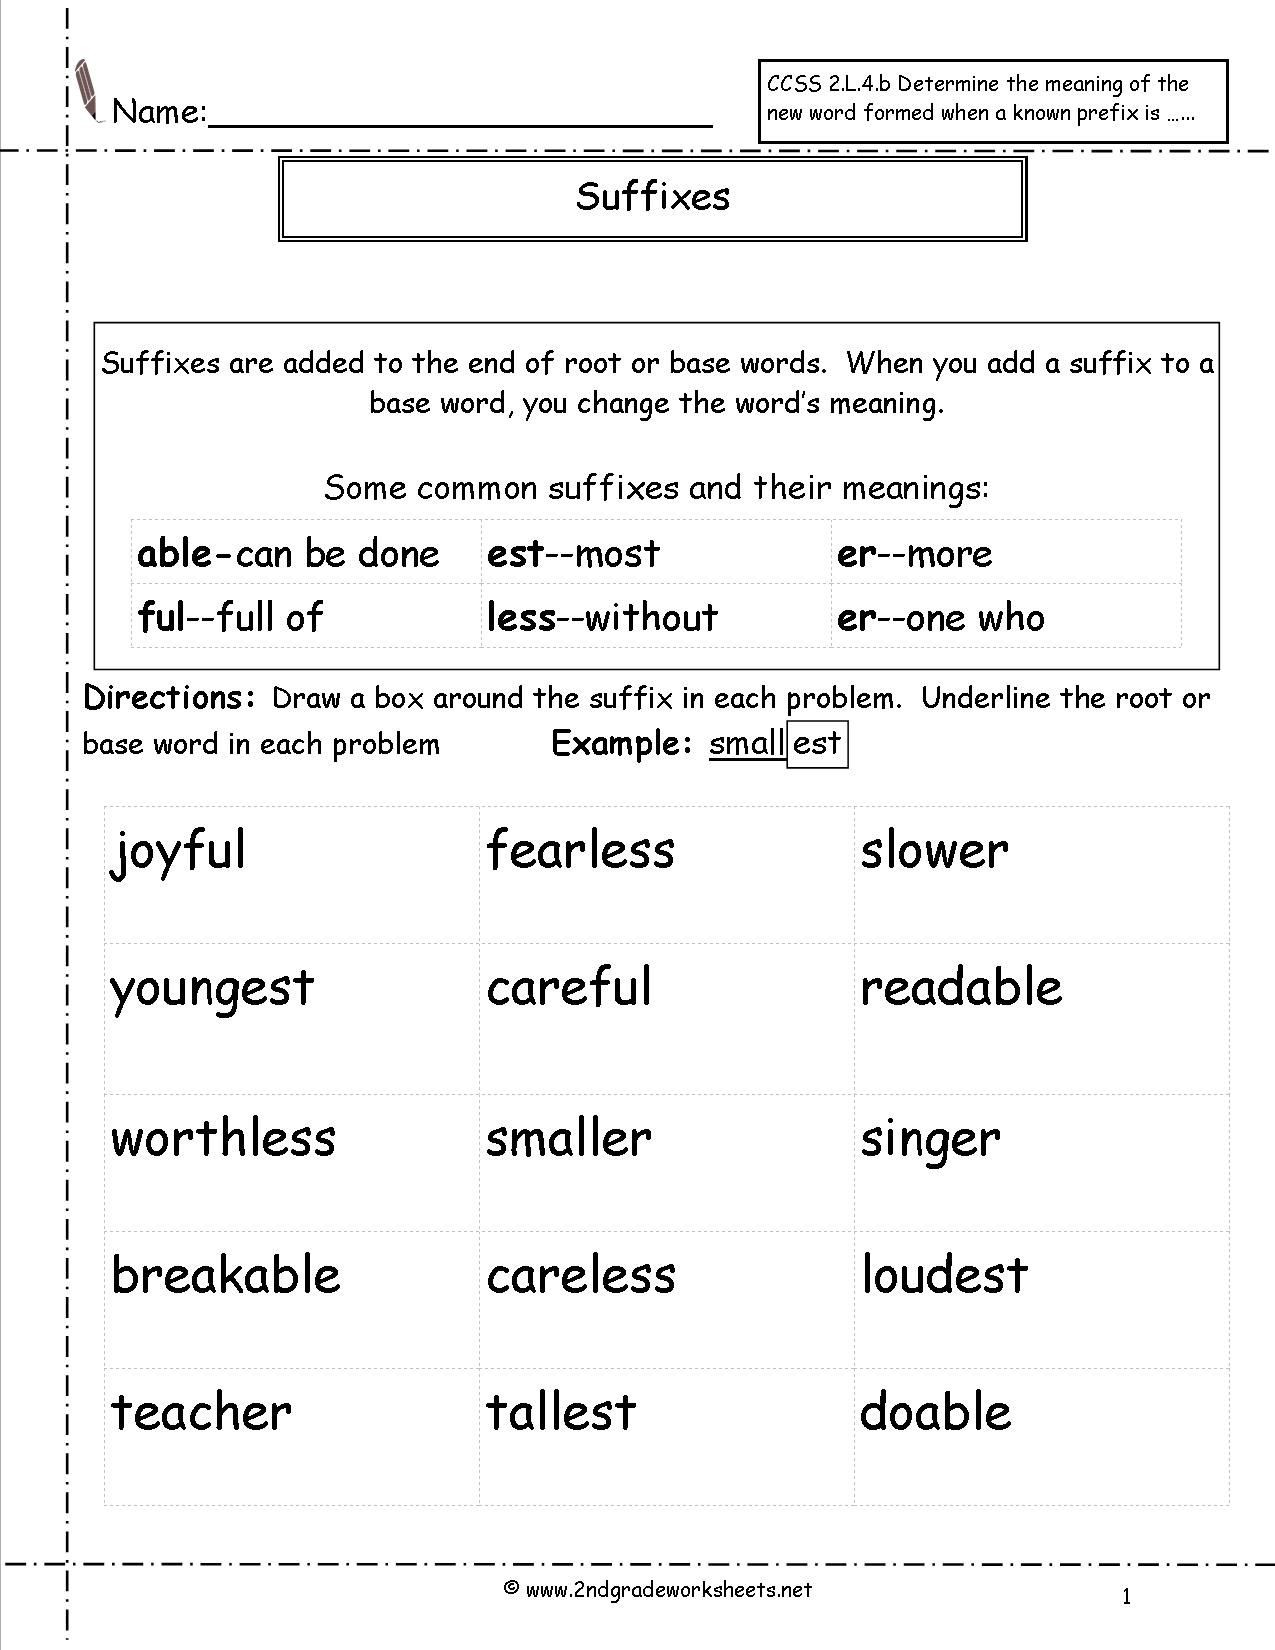 41 Innovative Prefix Worksheets For You